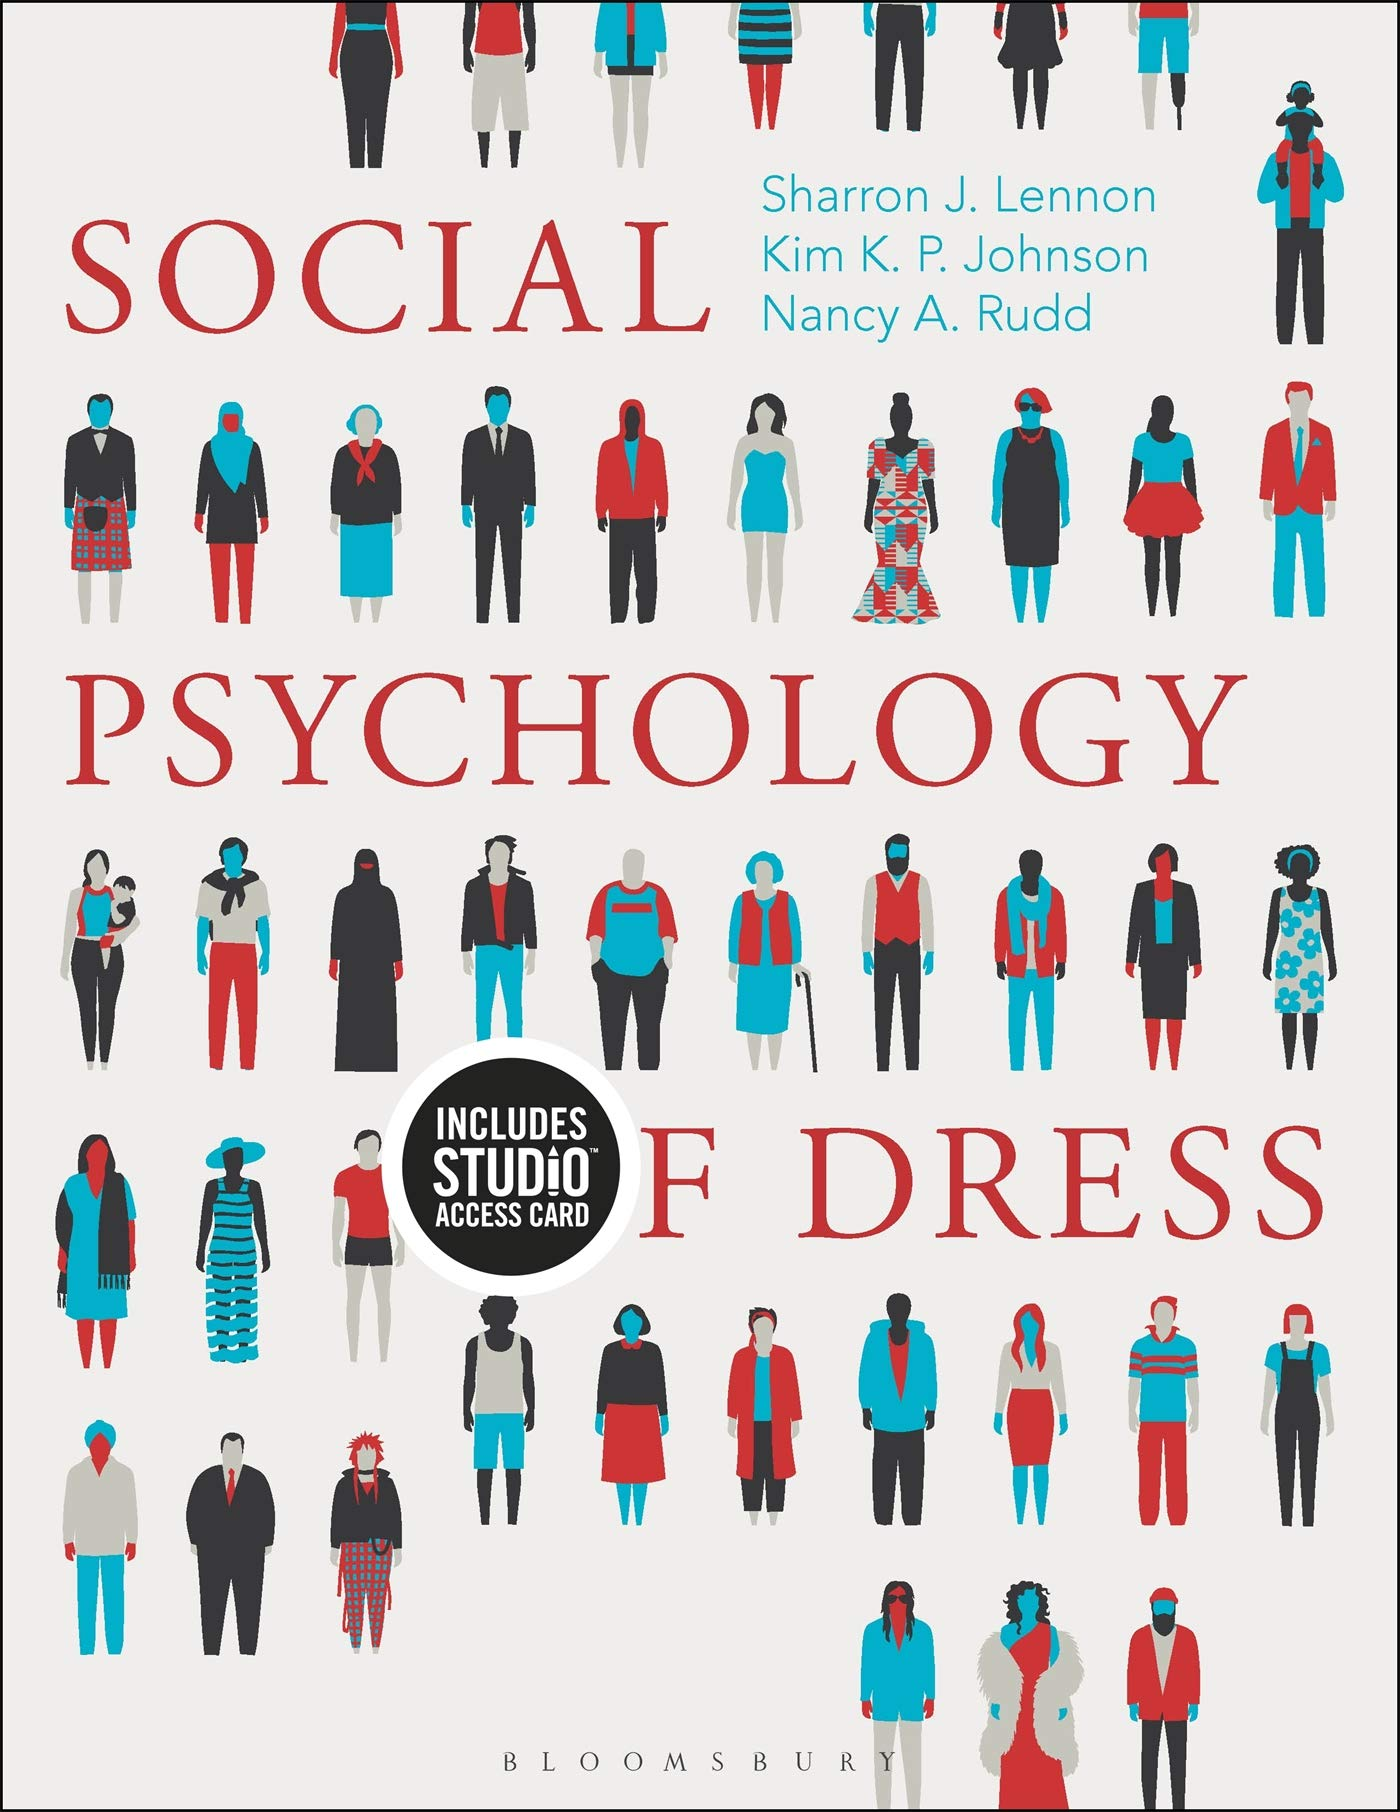 Image OfLennon, S: SOCIAL PSYCHOLOGY OF DRESS